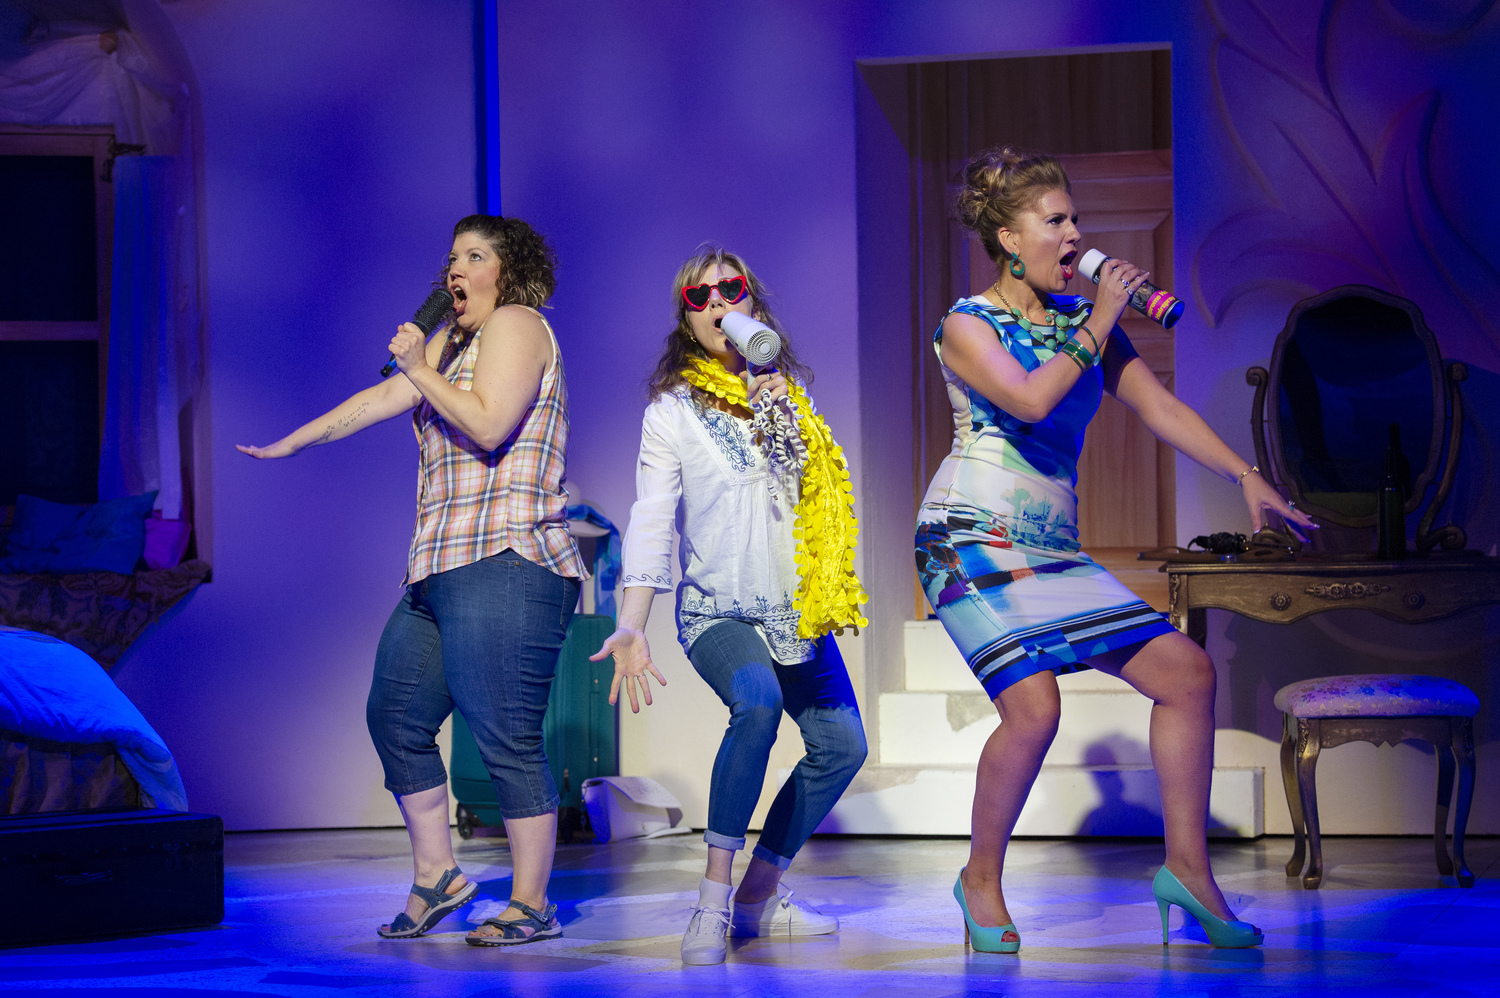 BWW Review: MAMMA MIA! Brings A Refreshing New Look To A Classic Musical